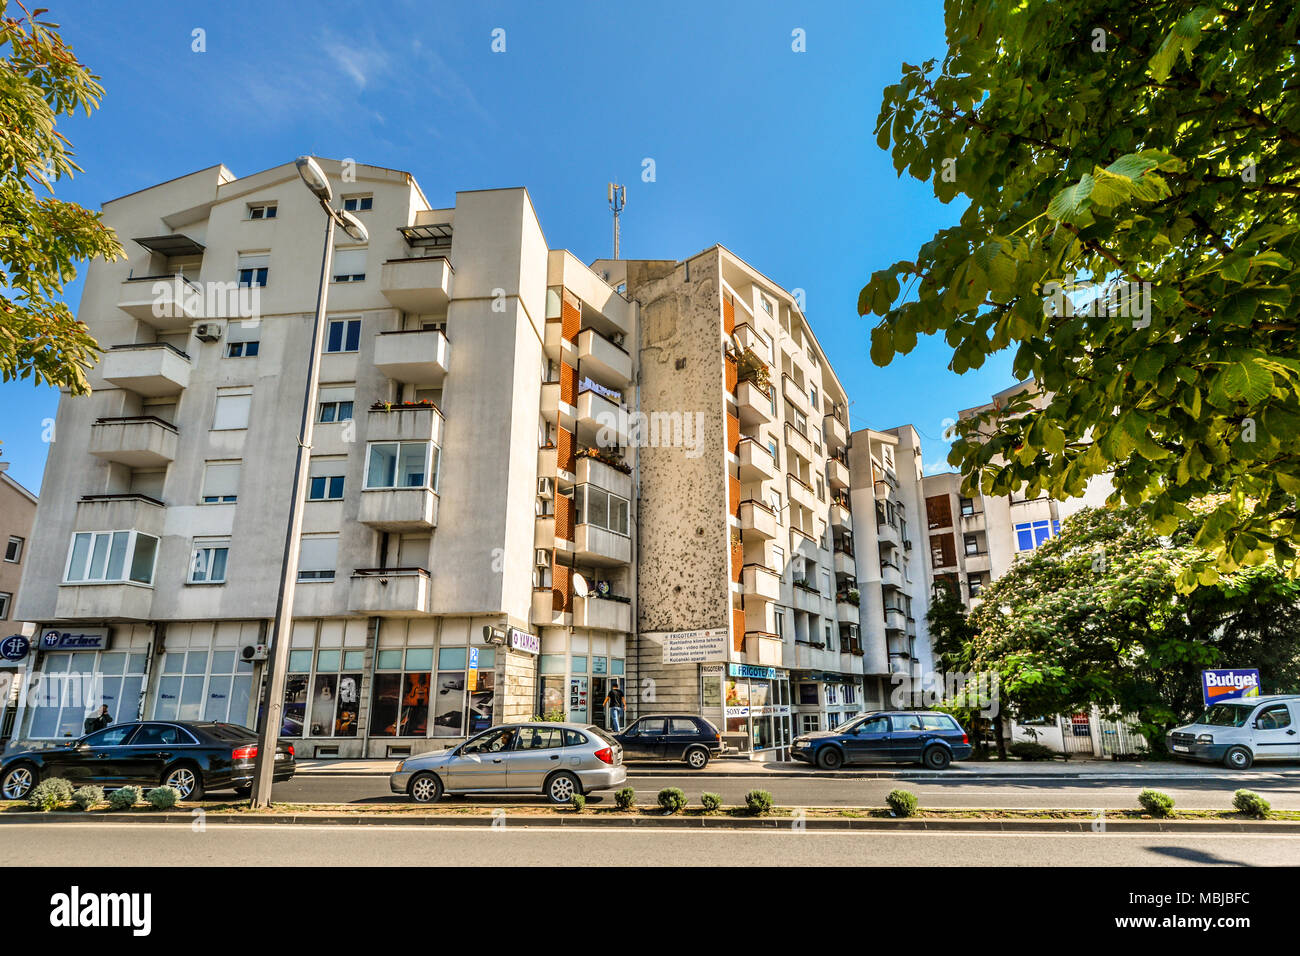 A newer apartment building with retail stores still shows the bomb blasts and bullet holes from the Bosnian war in Mostar Bosnia. - Stock Image